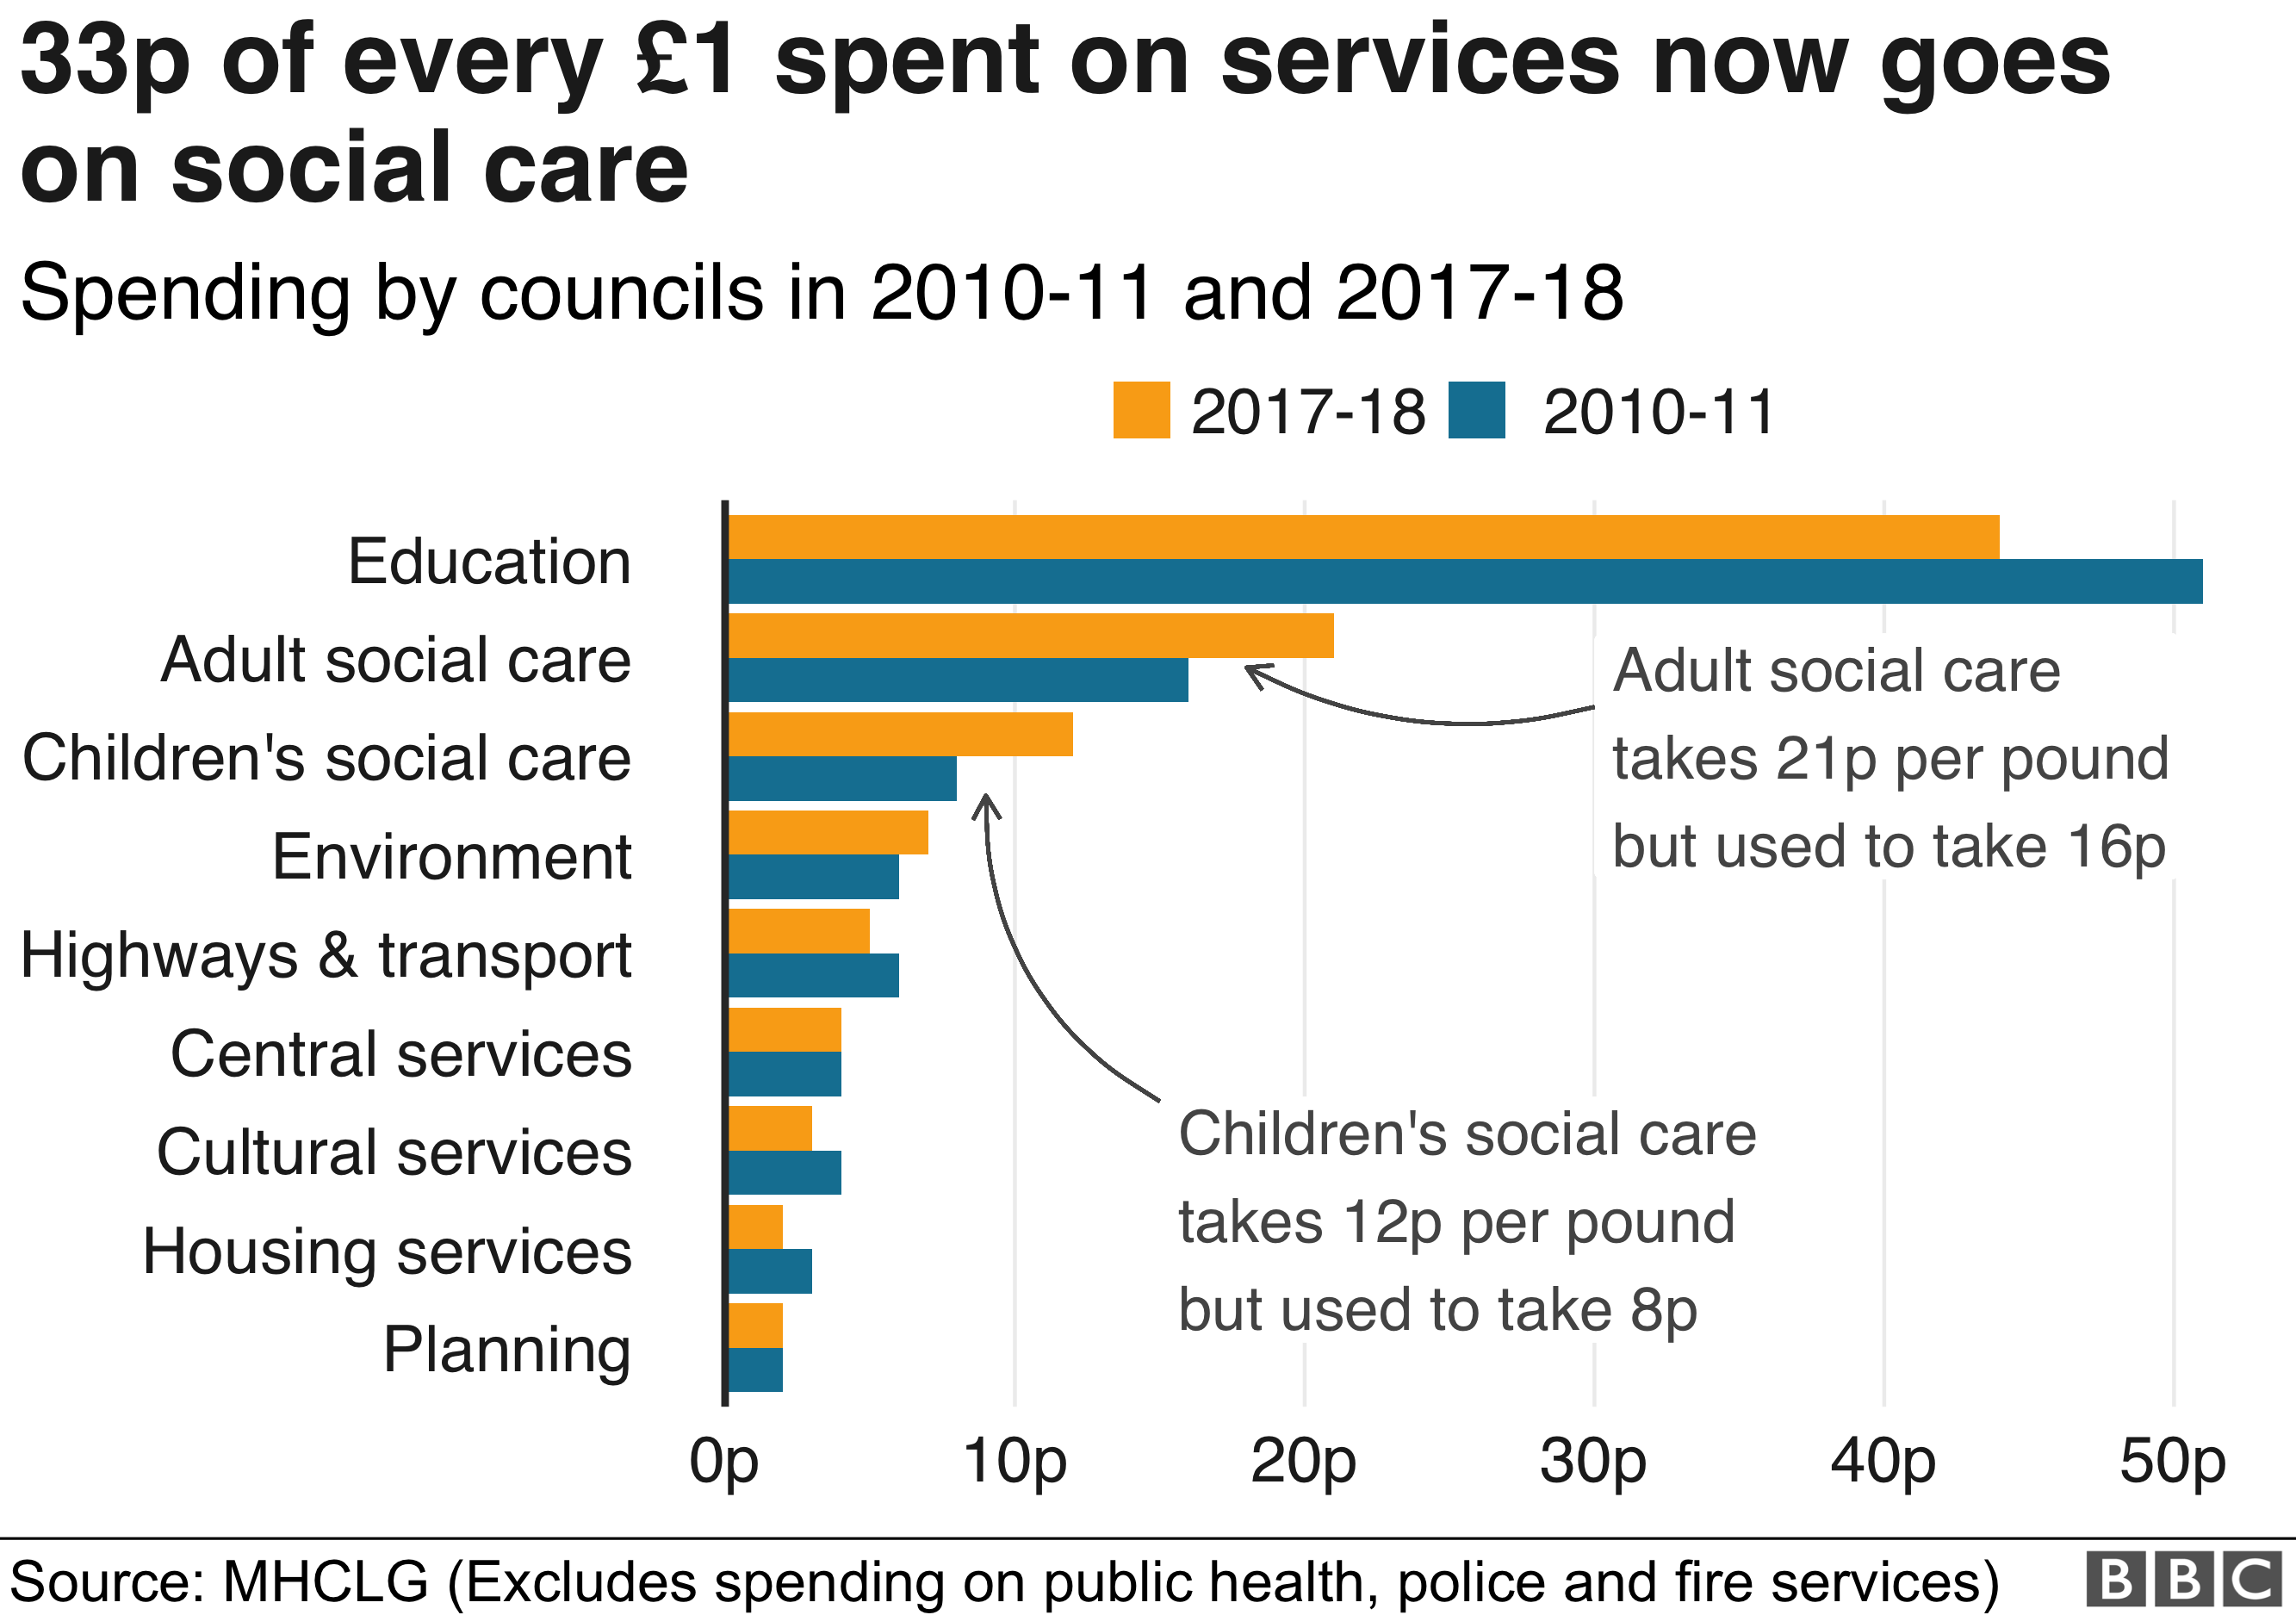 chart showing spend in every pound